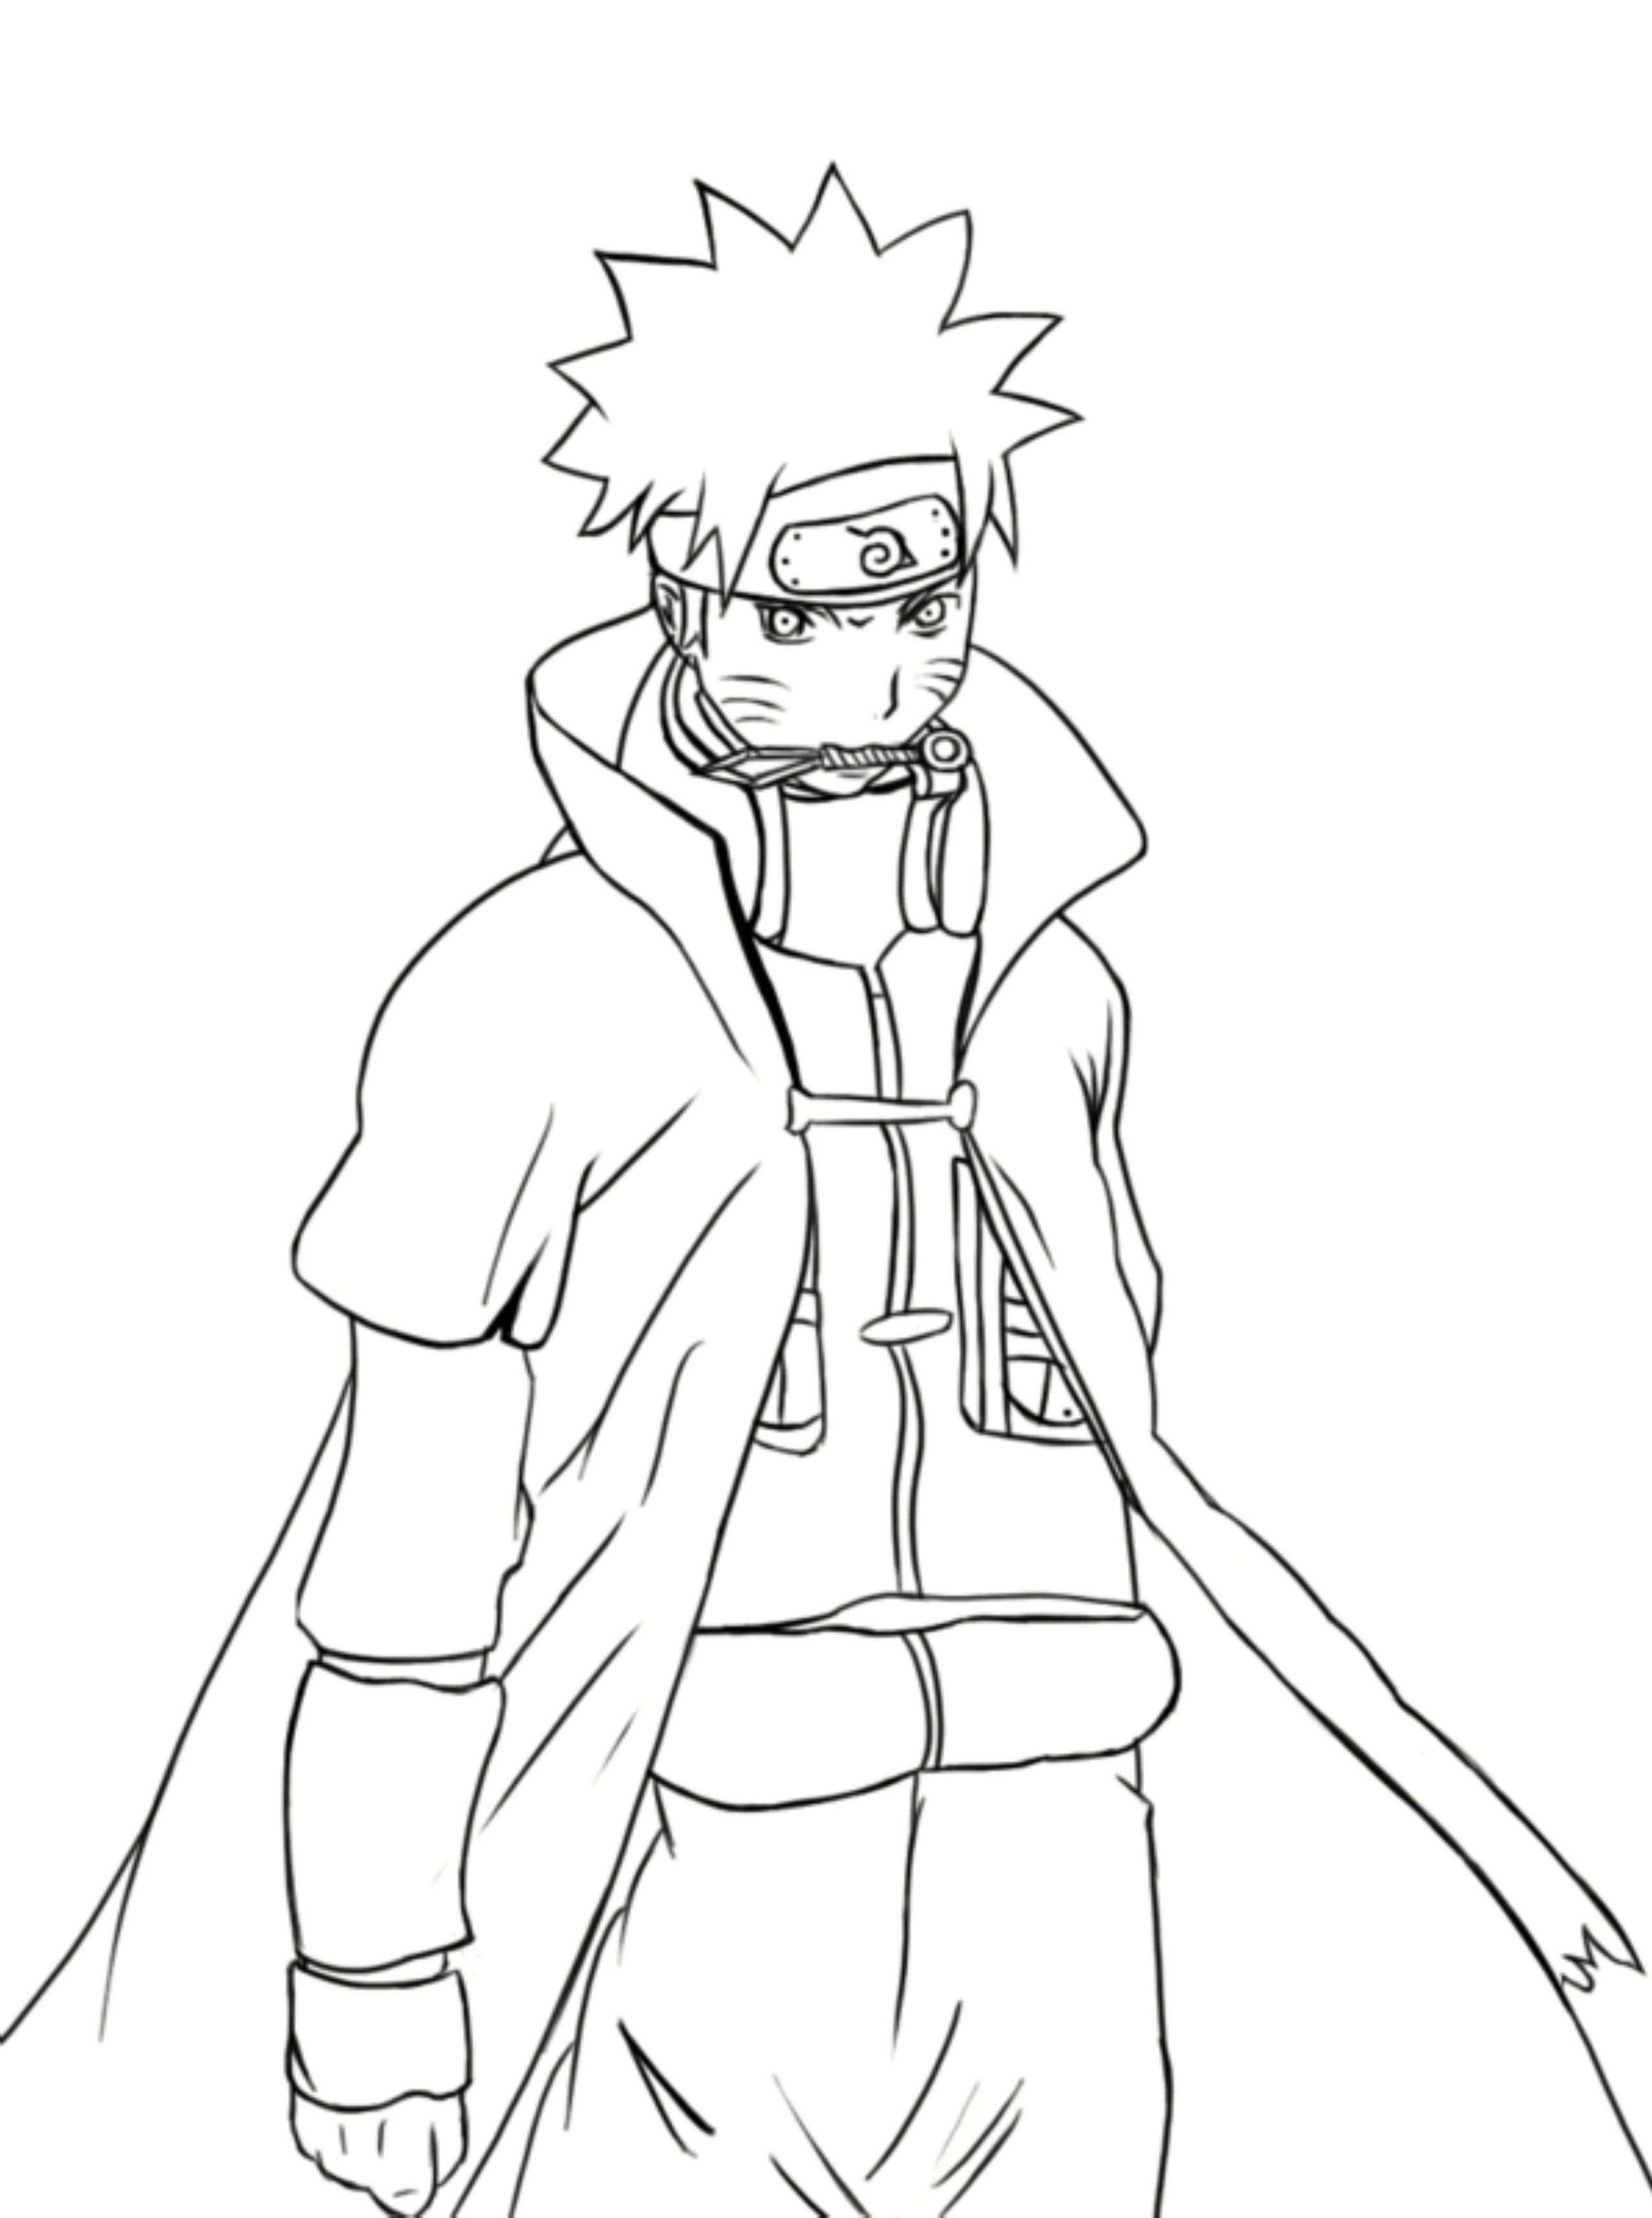 Free Printable Naruto Coloring Pages For Kids Naruto Coloring Pages Anime Coloring Pages Cartoon Coloring Pages